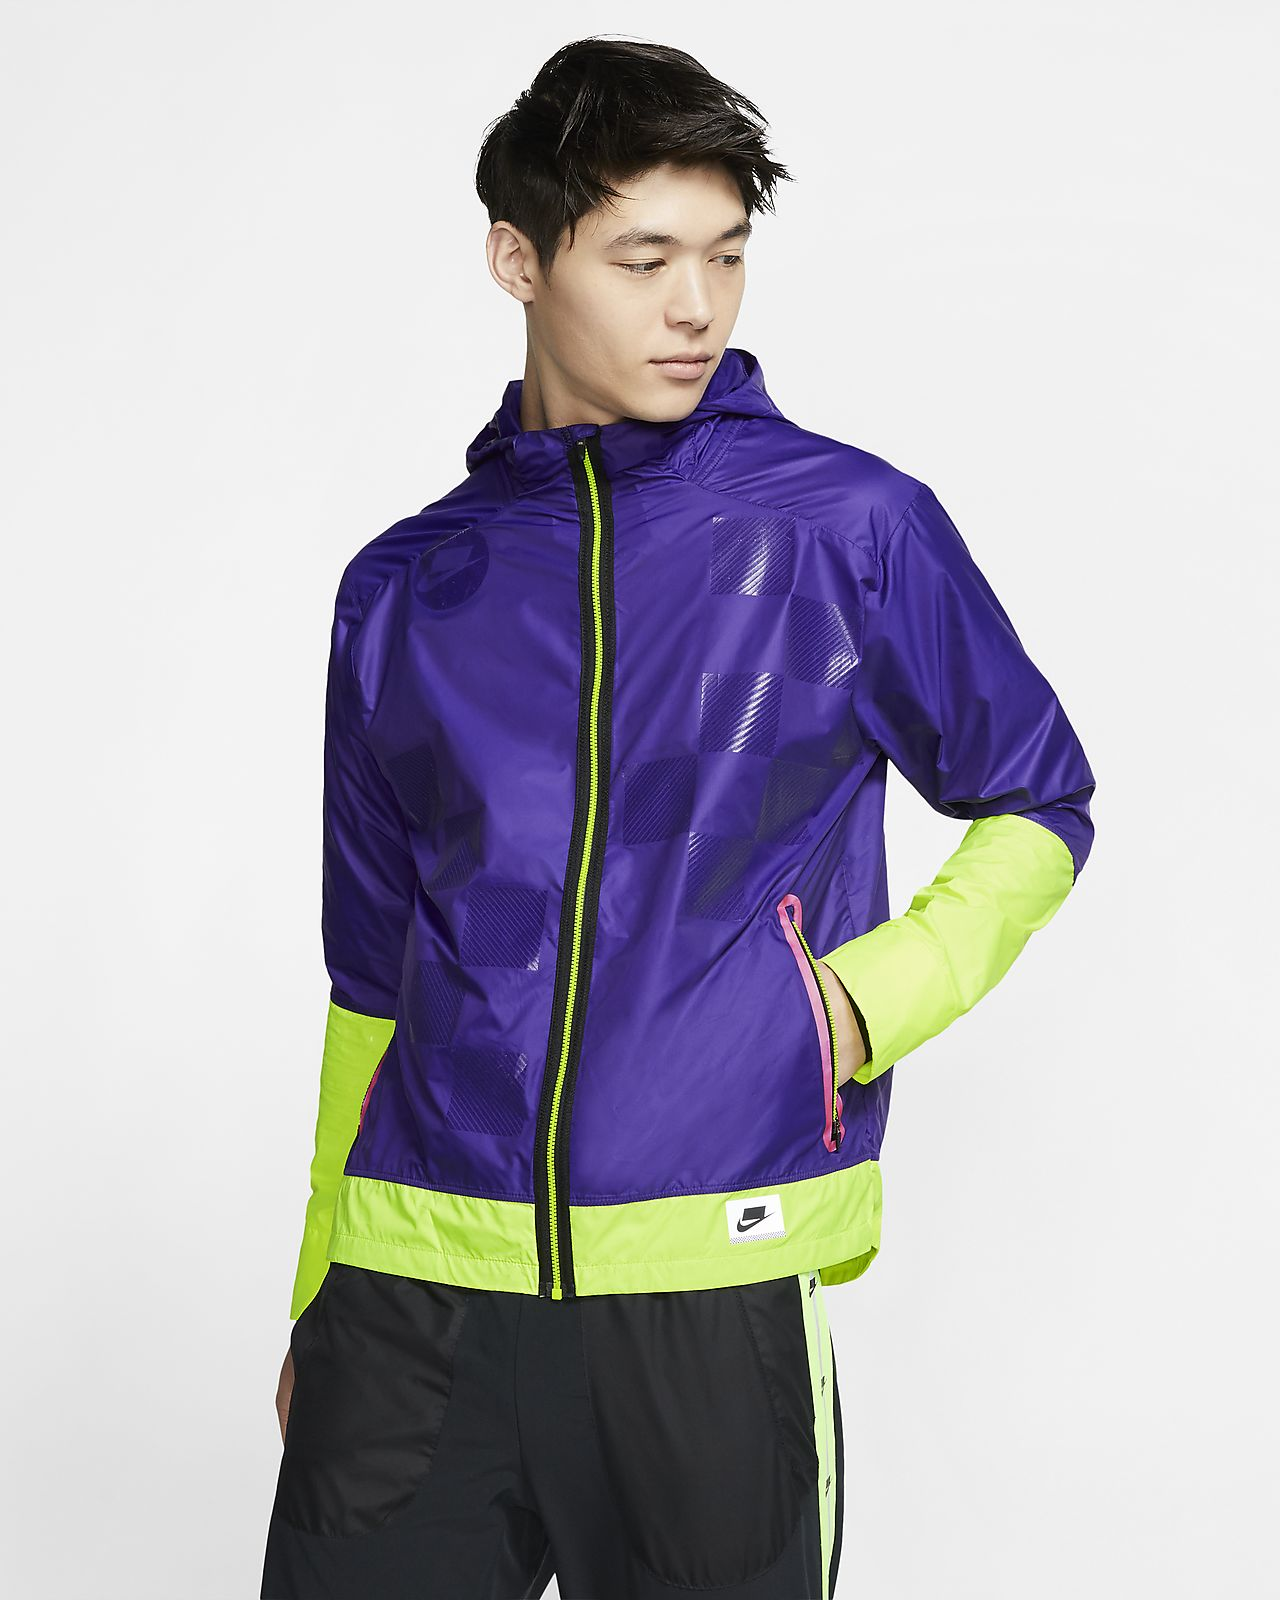 Nike Shield Men's Flash Running Jacket